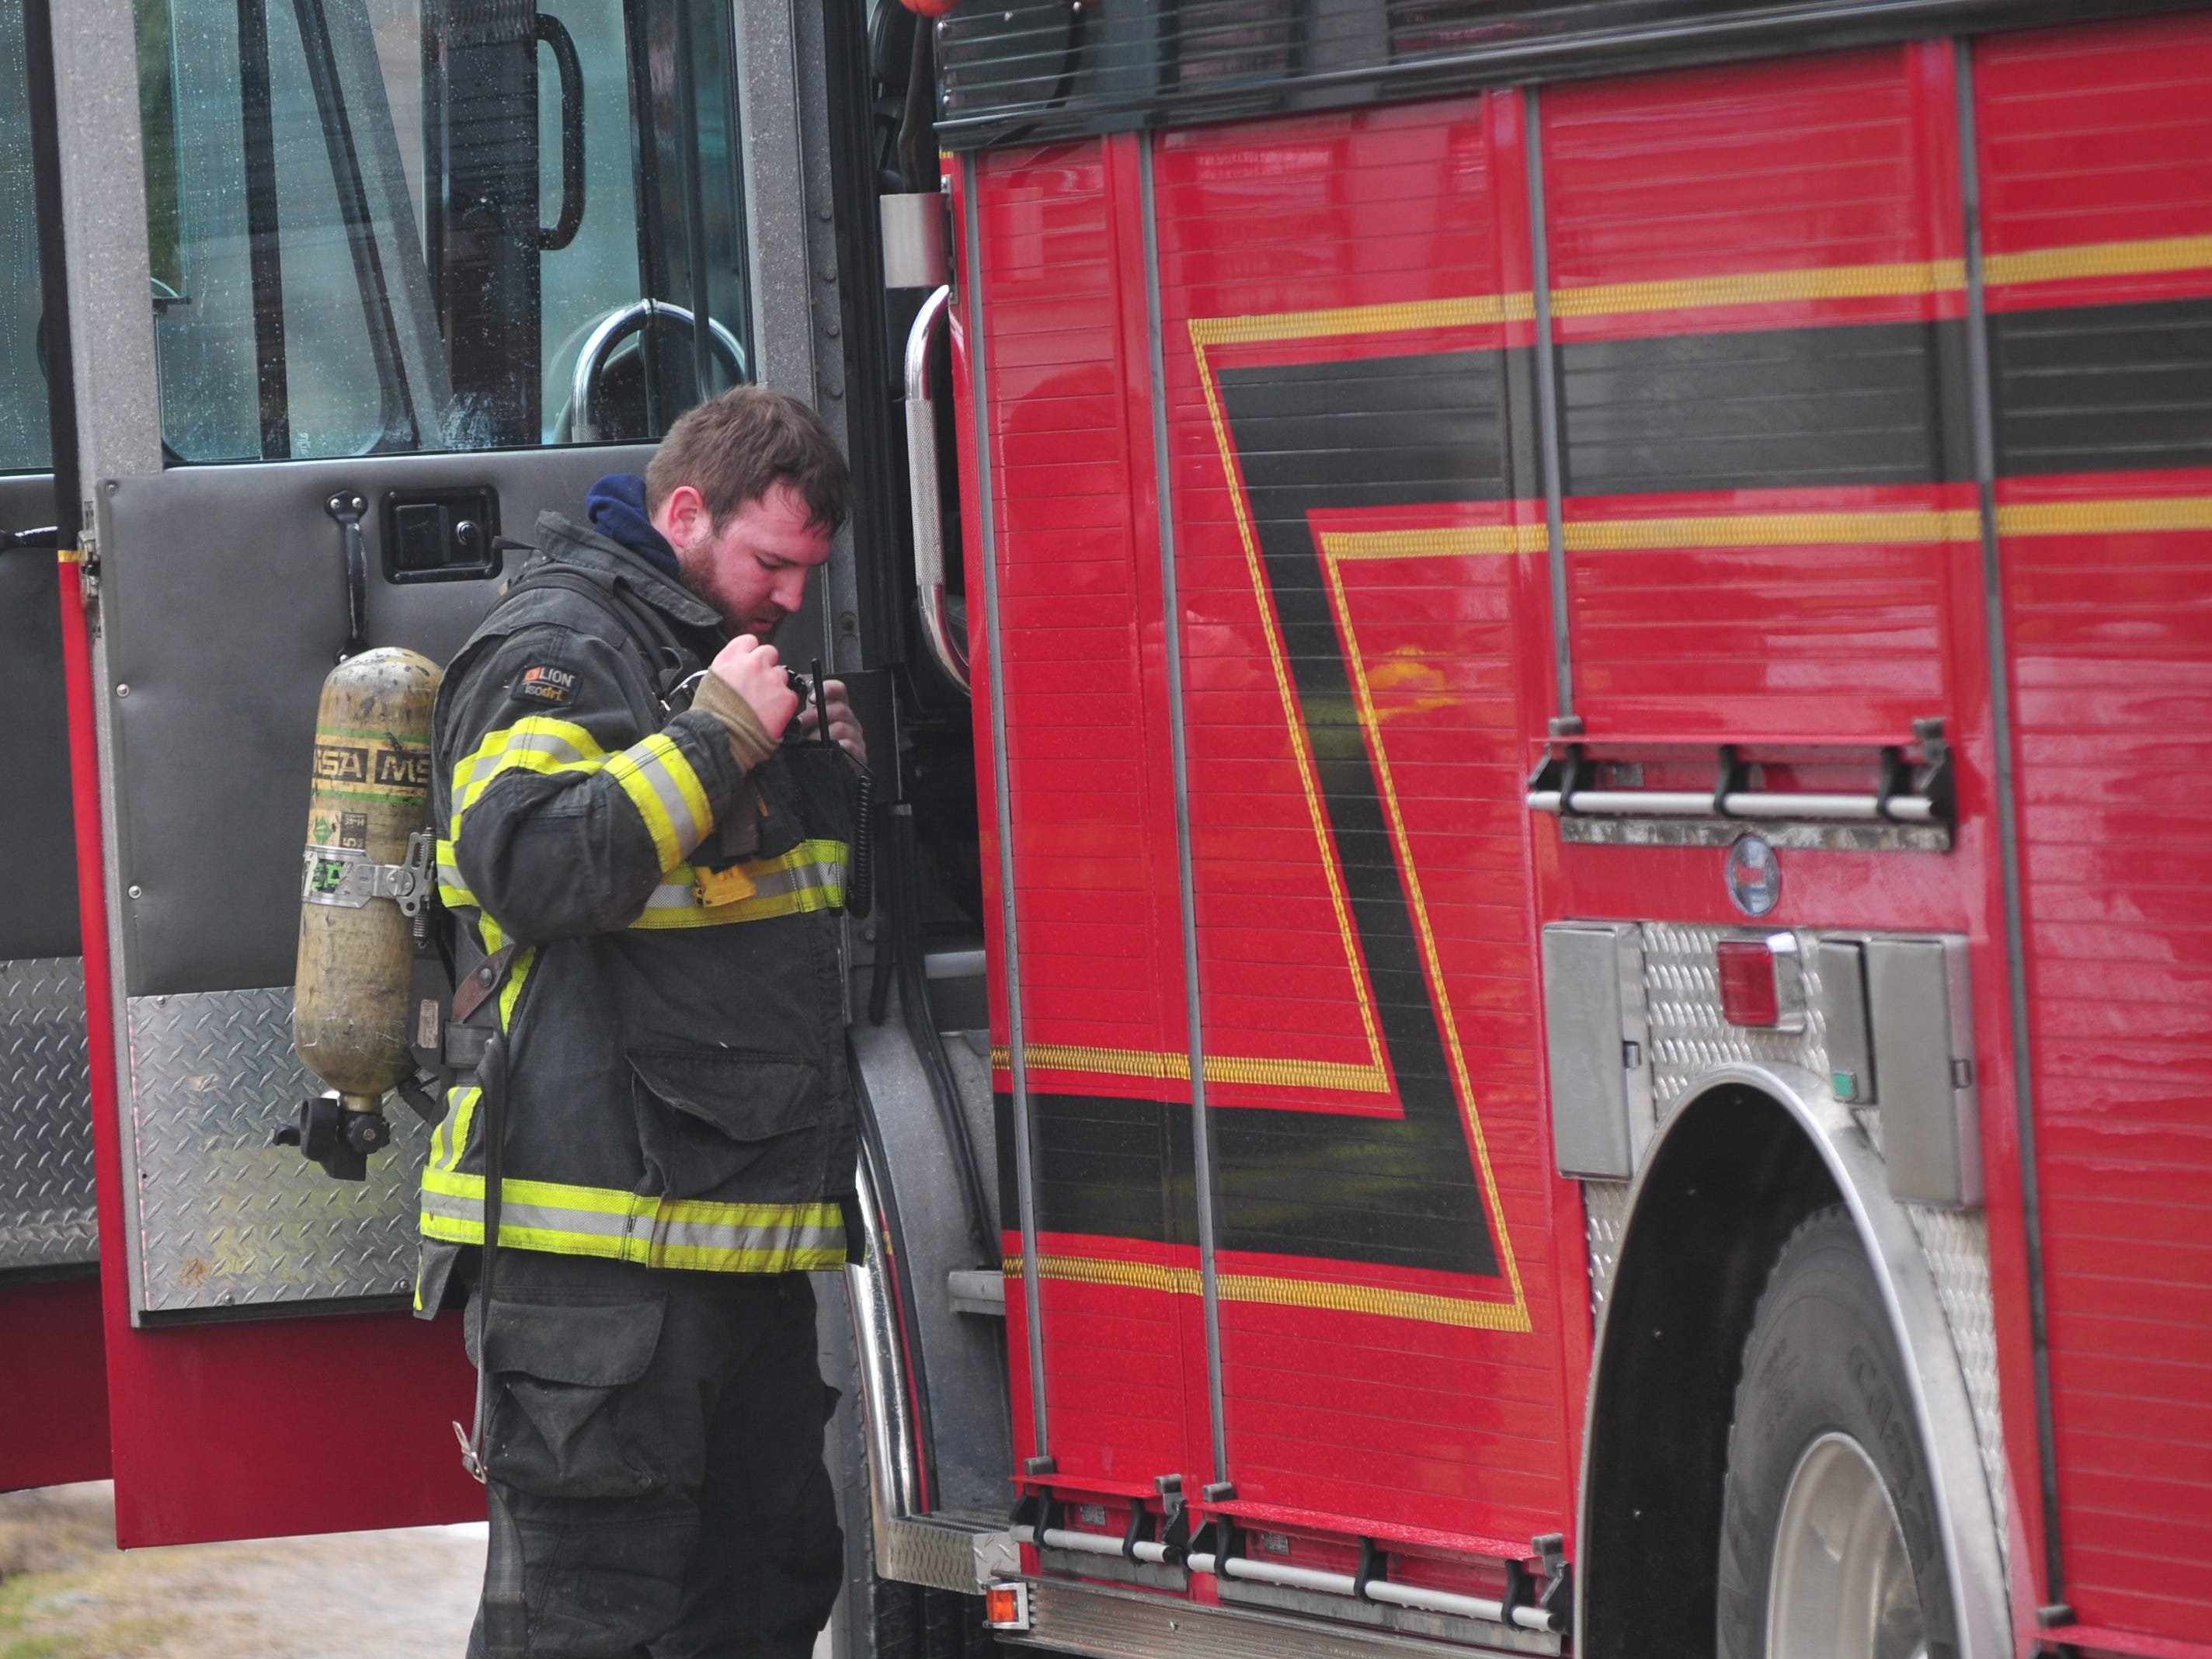 A firefighter removes his gear after working Thursday morning at a chimney fire in the 6800 block of U.S. 40 West.